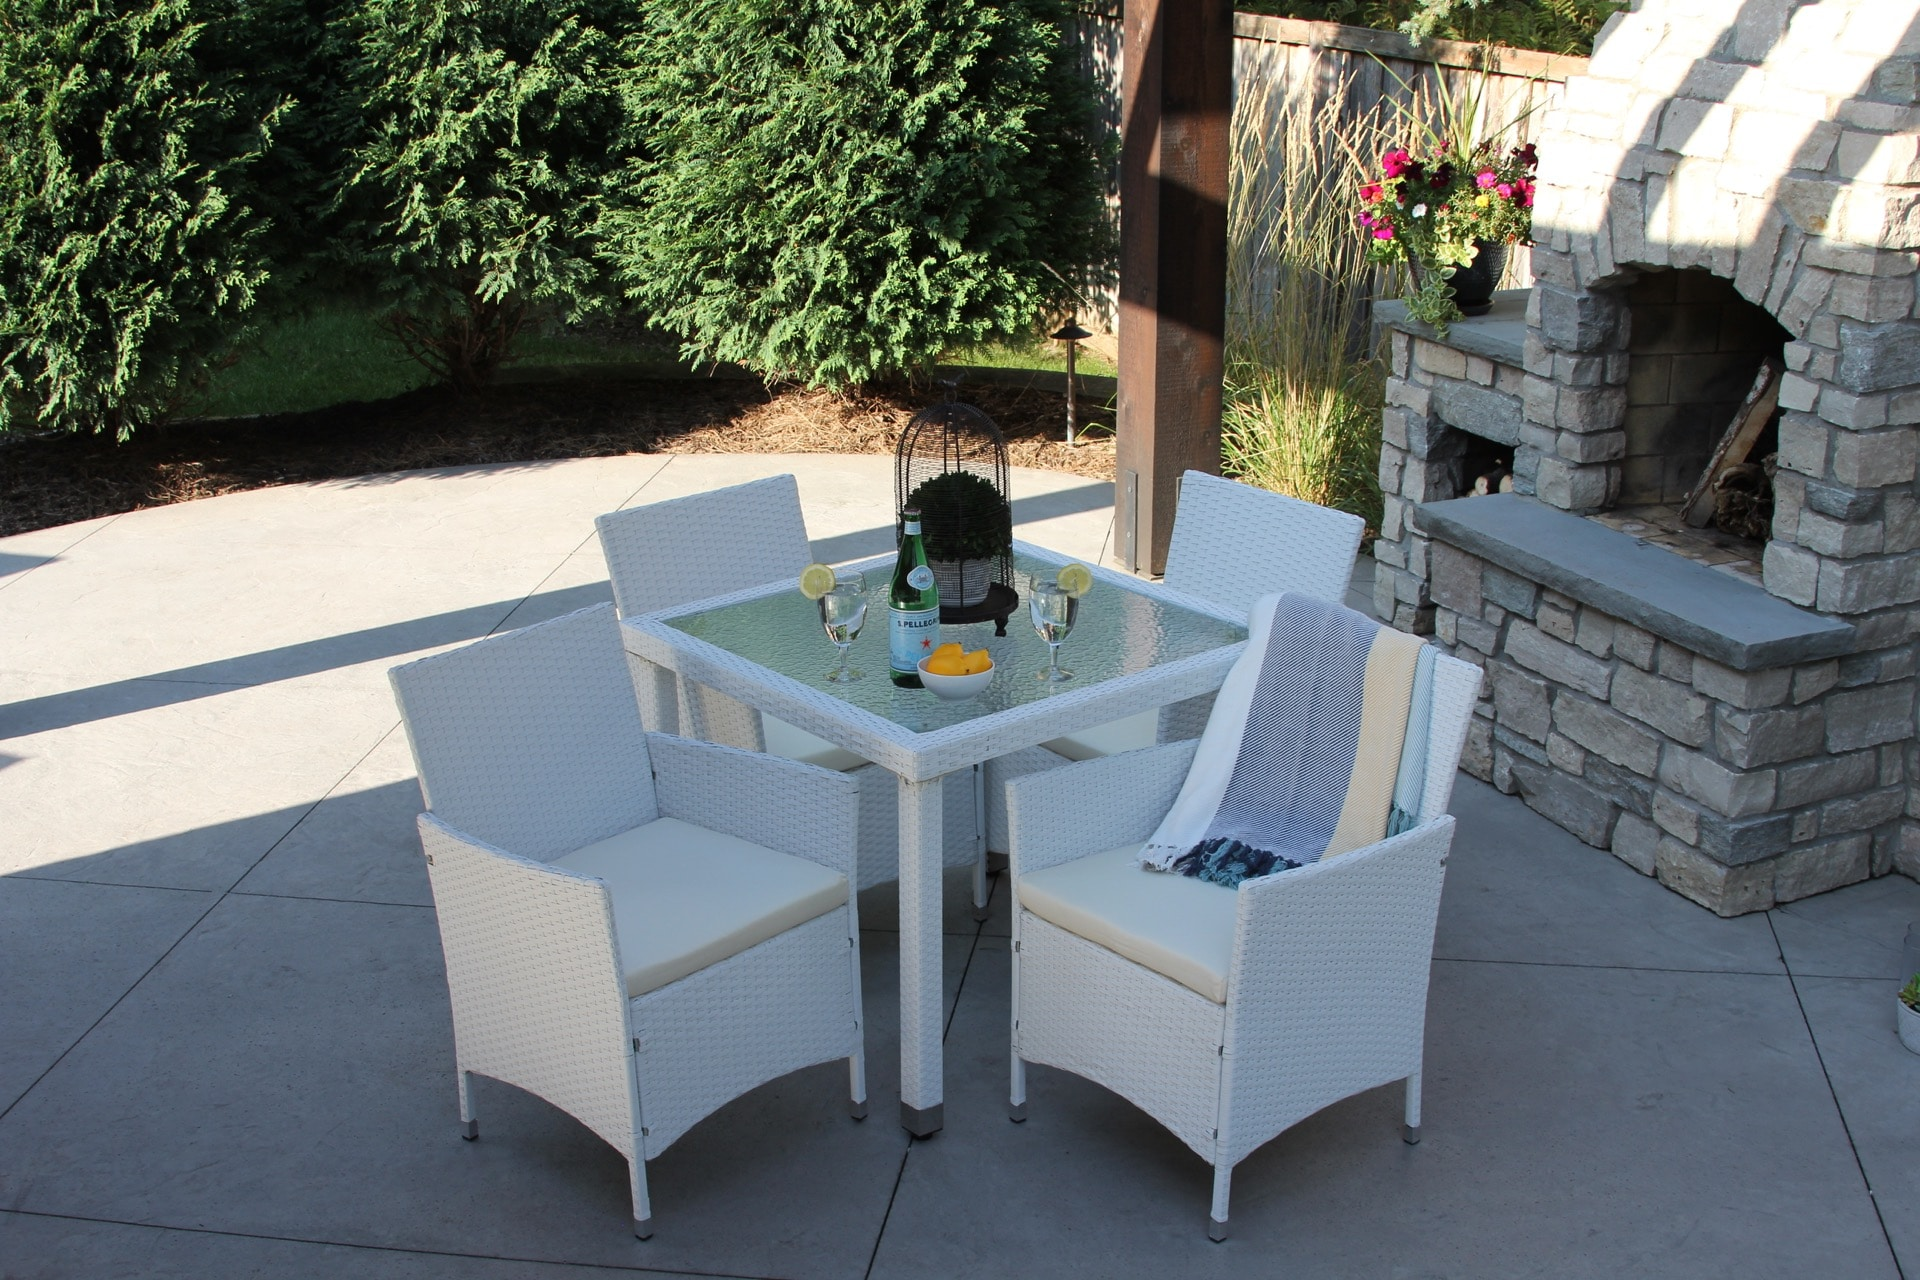 5 Piece Wicker Outdoor Dining Set Square Table With Recessed Glass